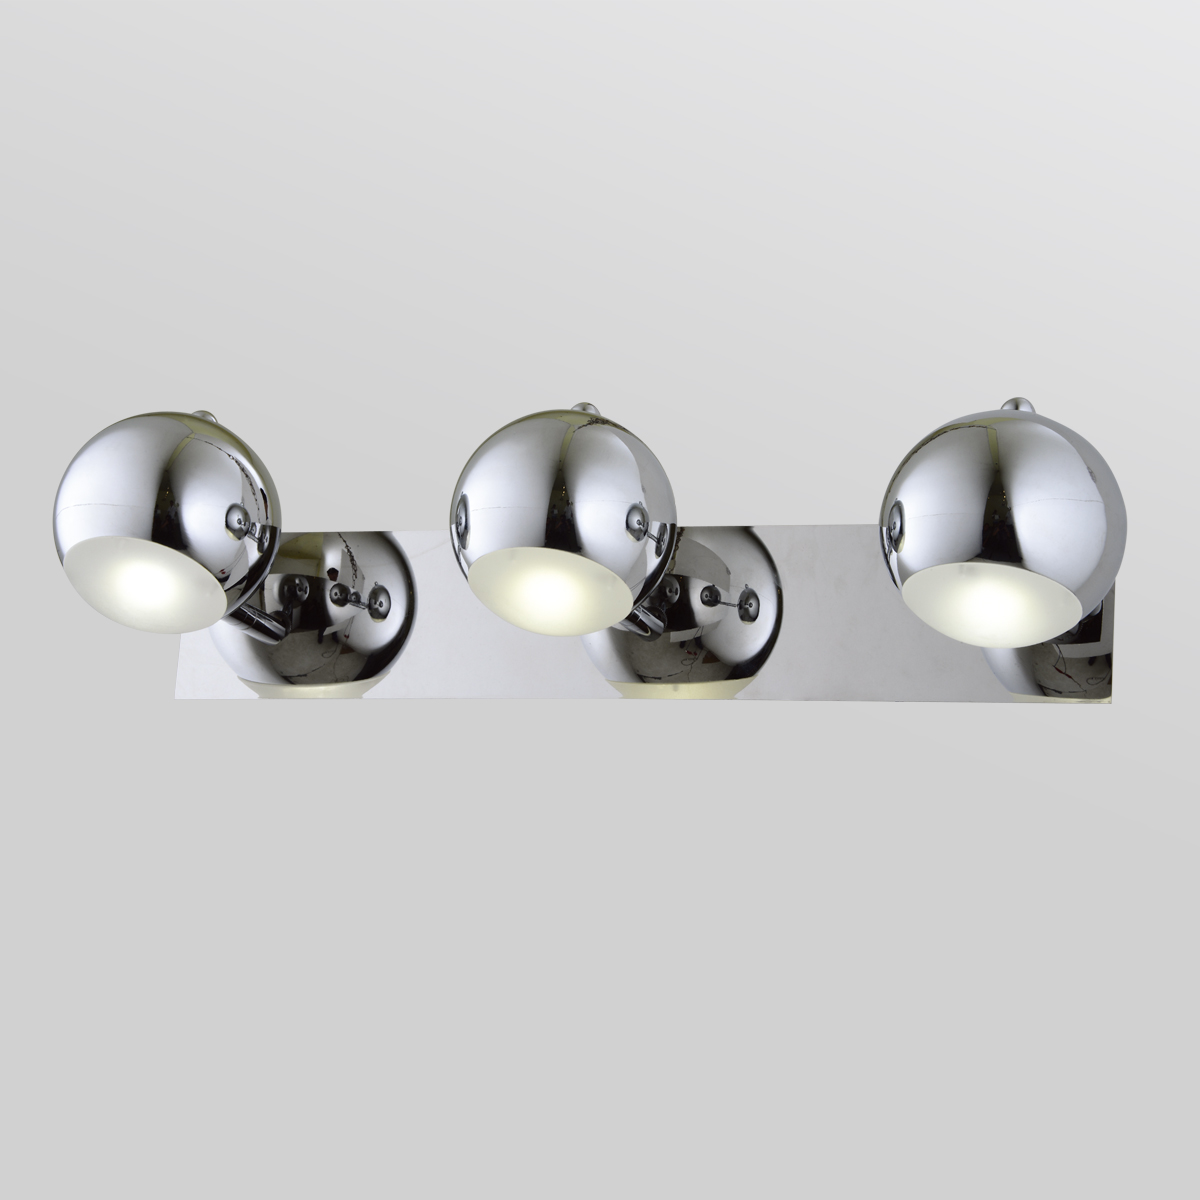 LED Wall Light<br/>ARR-11001-03-CH-LED